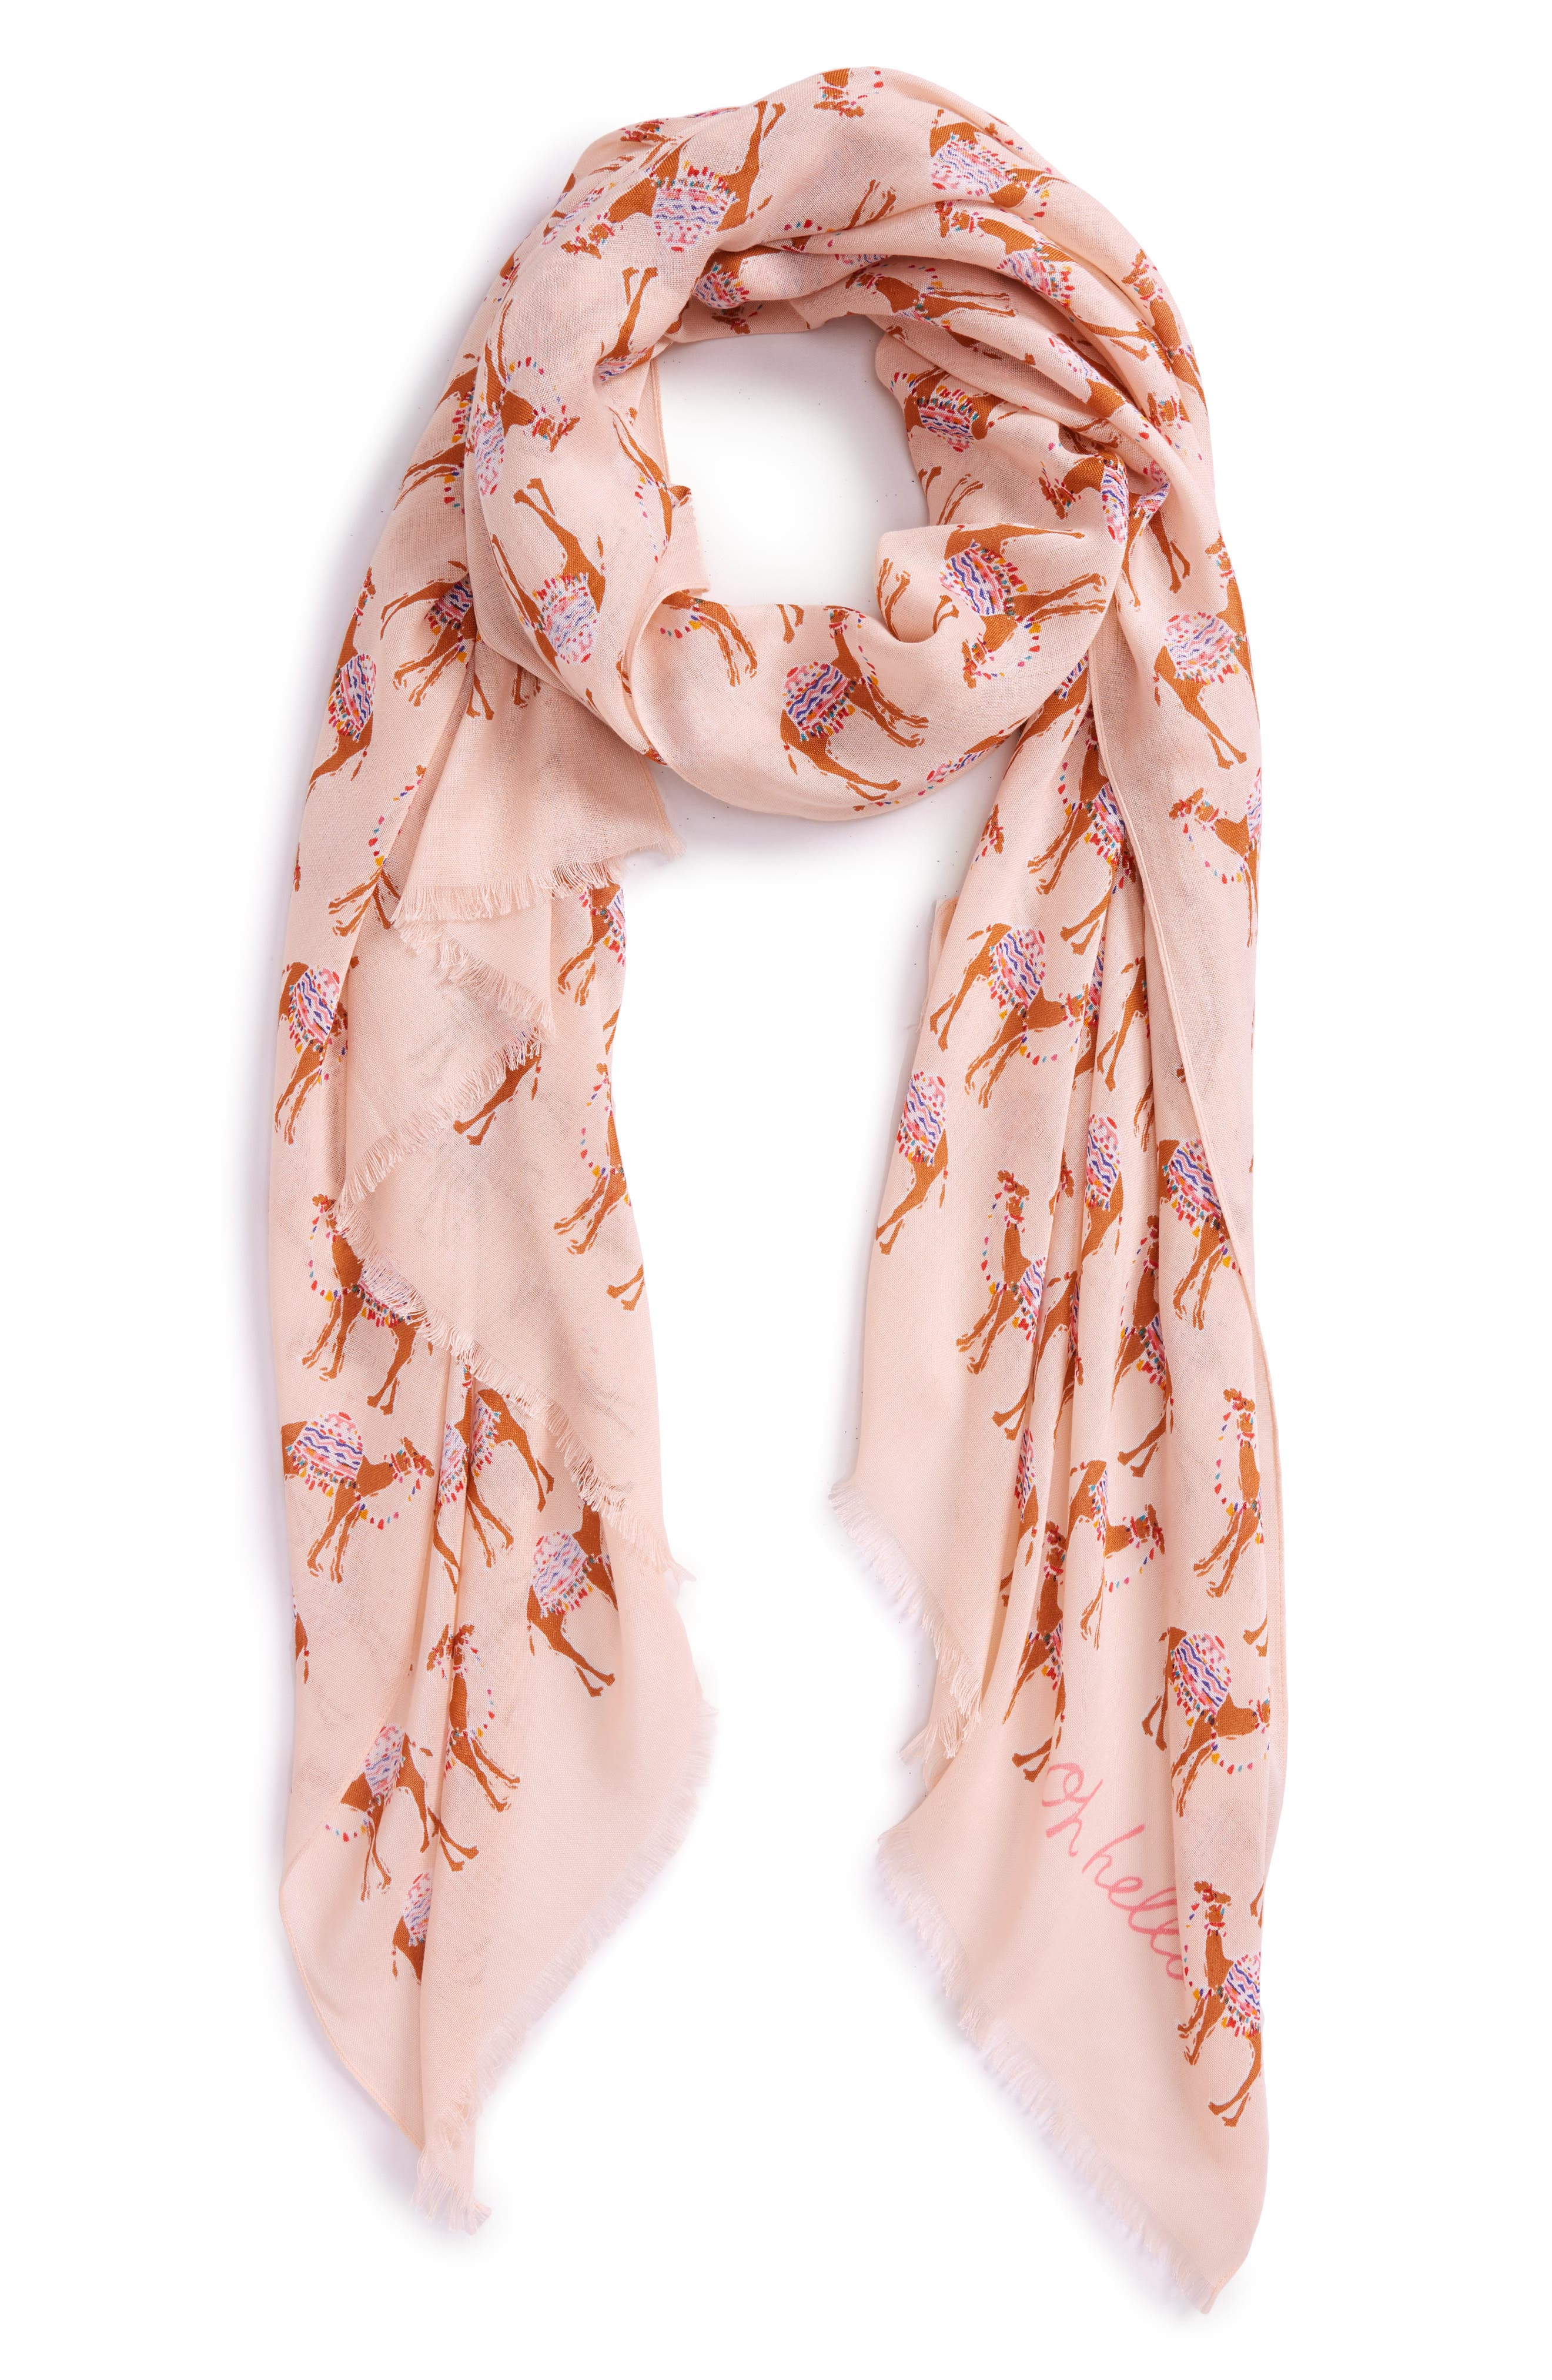 camel march scarf,                             Main thumbnail 1, color,                             666